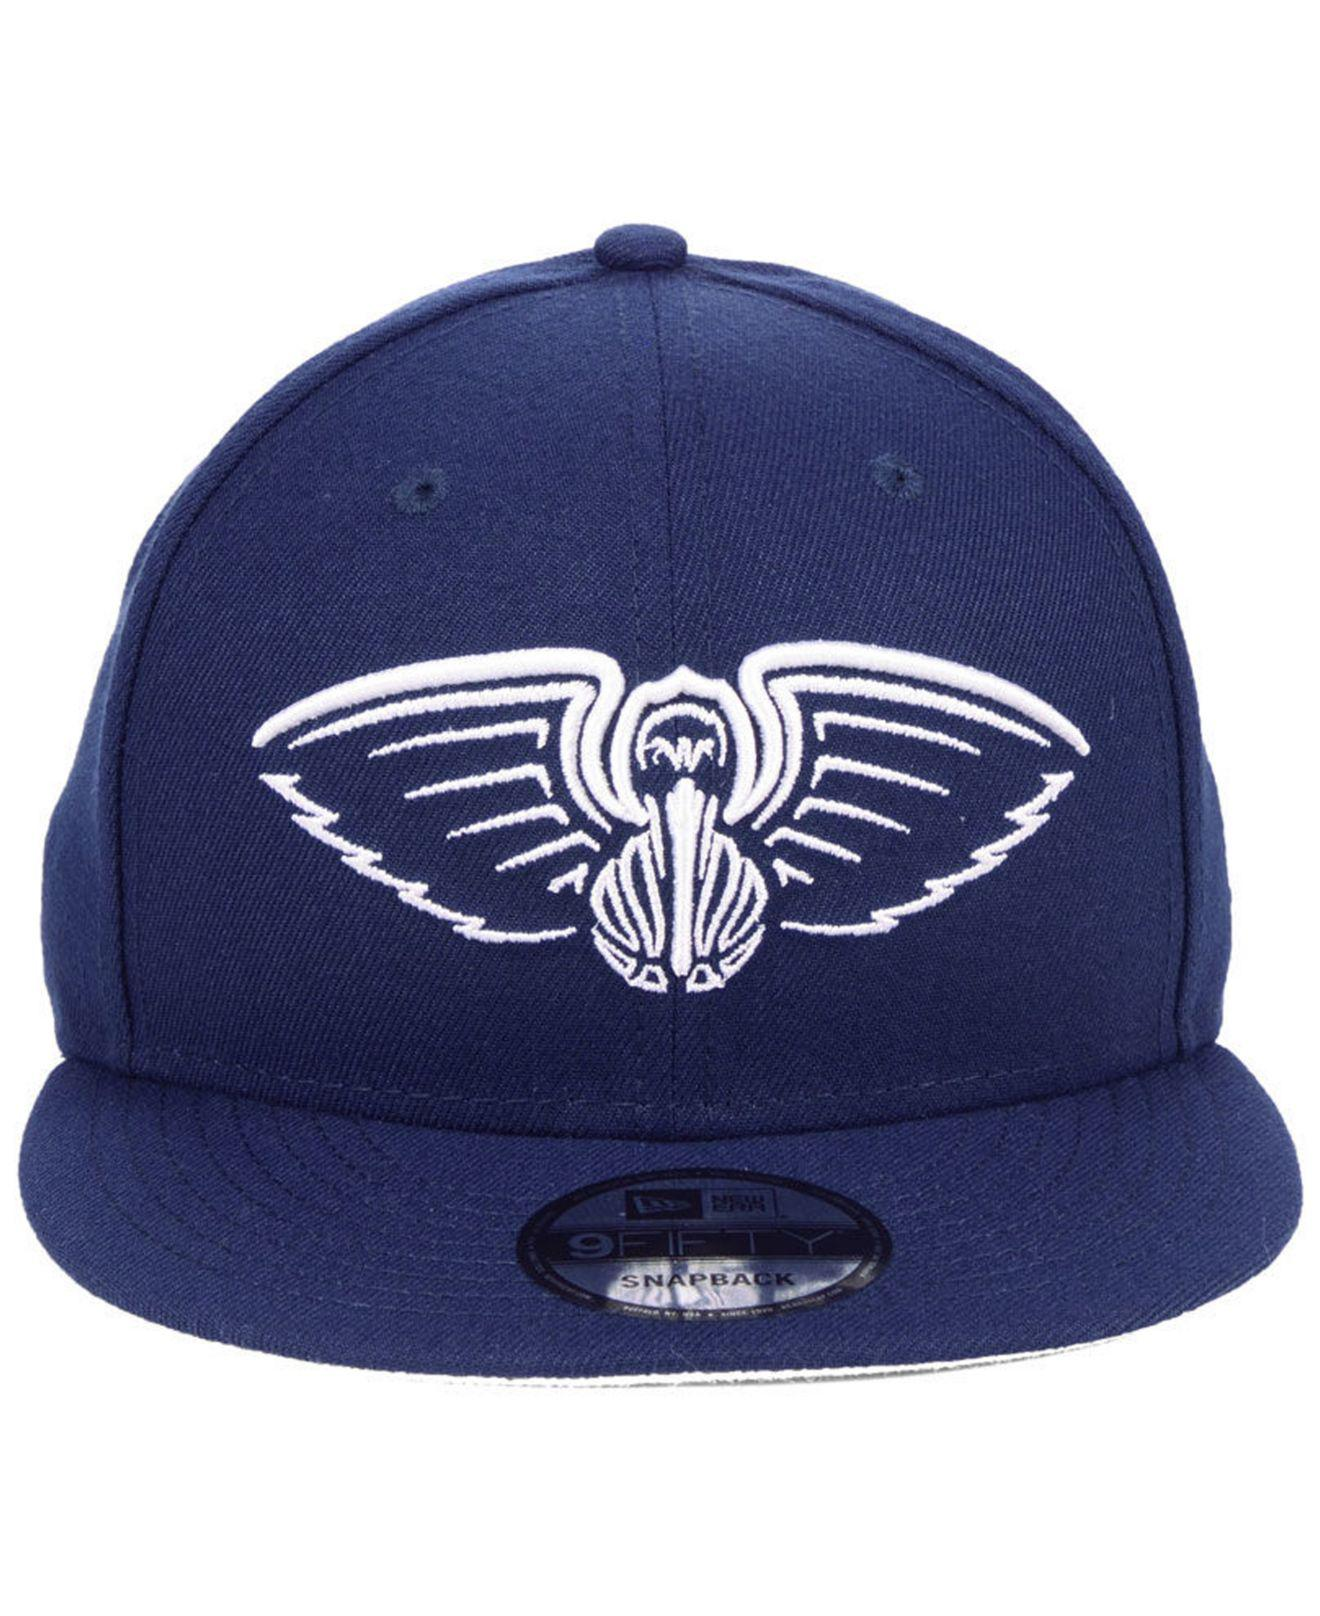 check out 662f0 4e908 ... canada lyst ktz new orleans pelicans logo trace 9fifty snapback cap in  blue for men 185eb